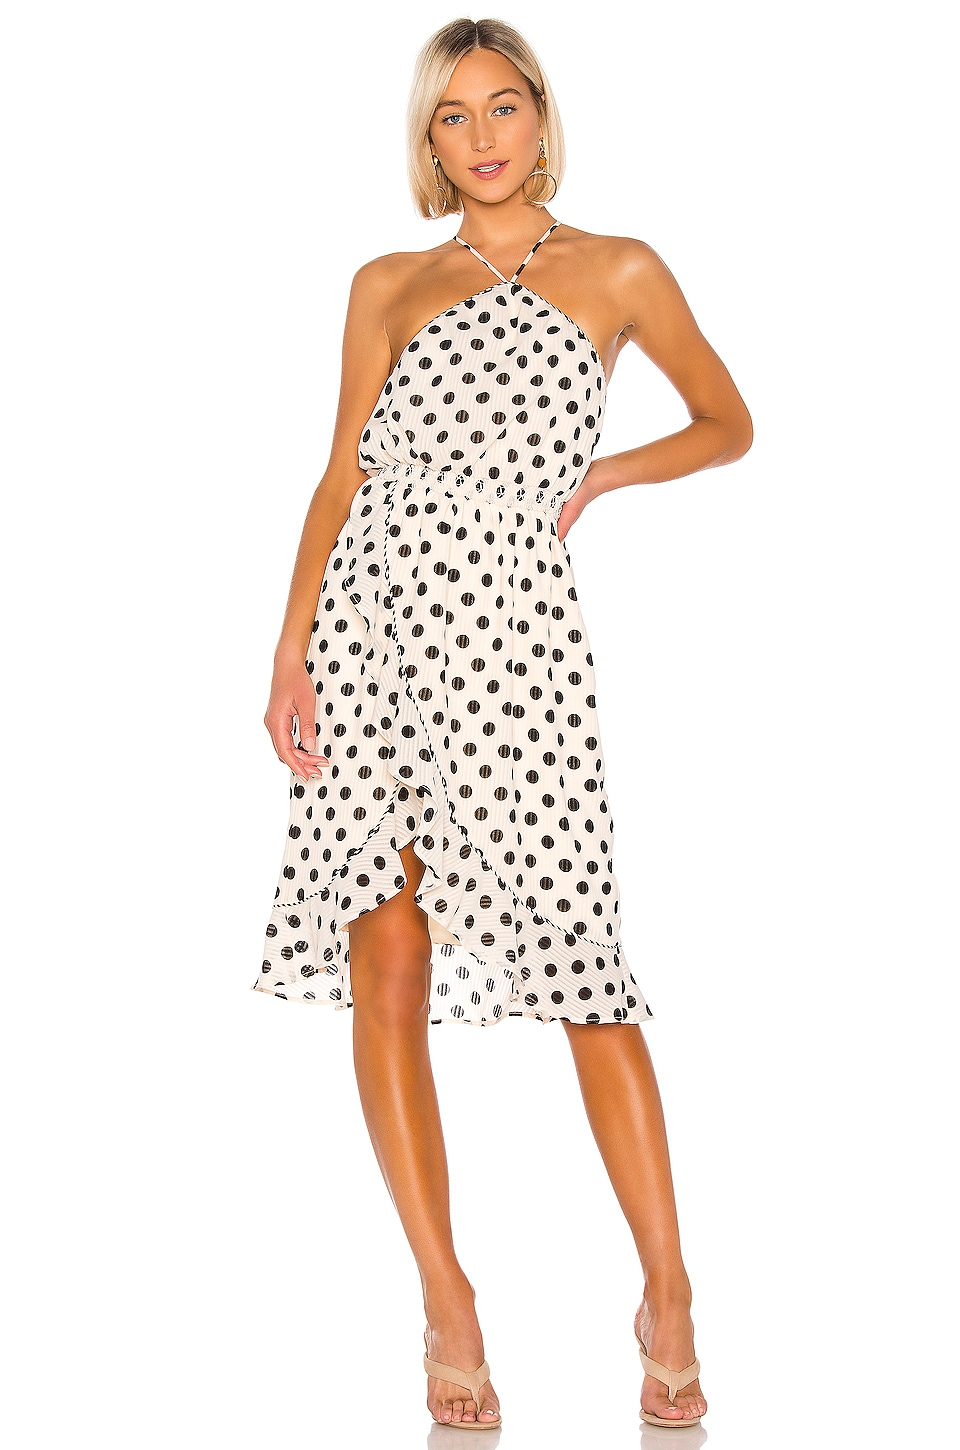 House of Harlow 1960 X REVOLVE Baye Midi Dress in Ivory & Black Dot